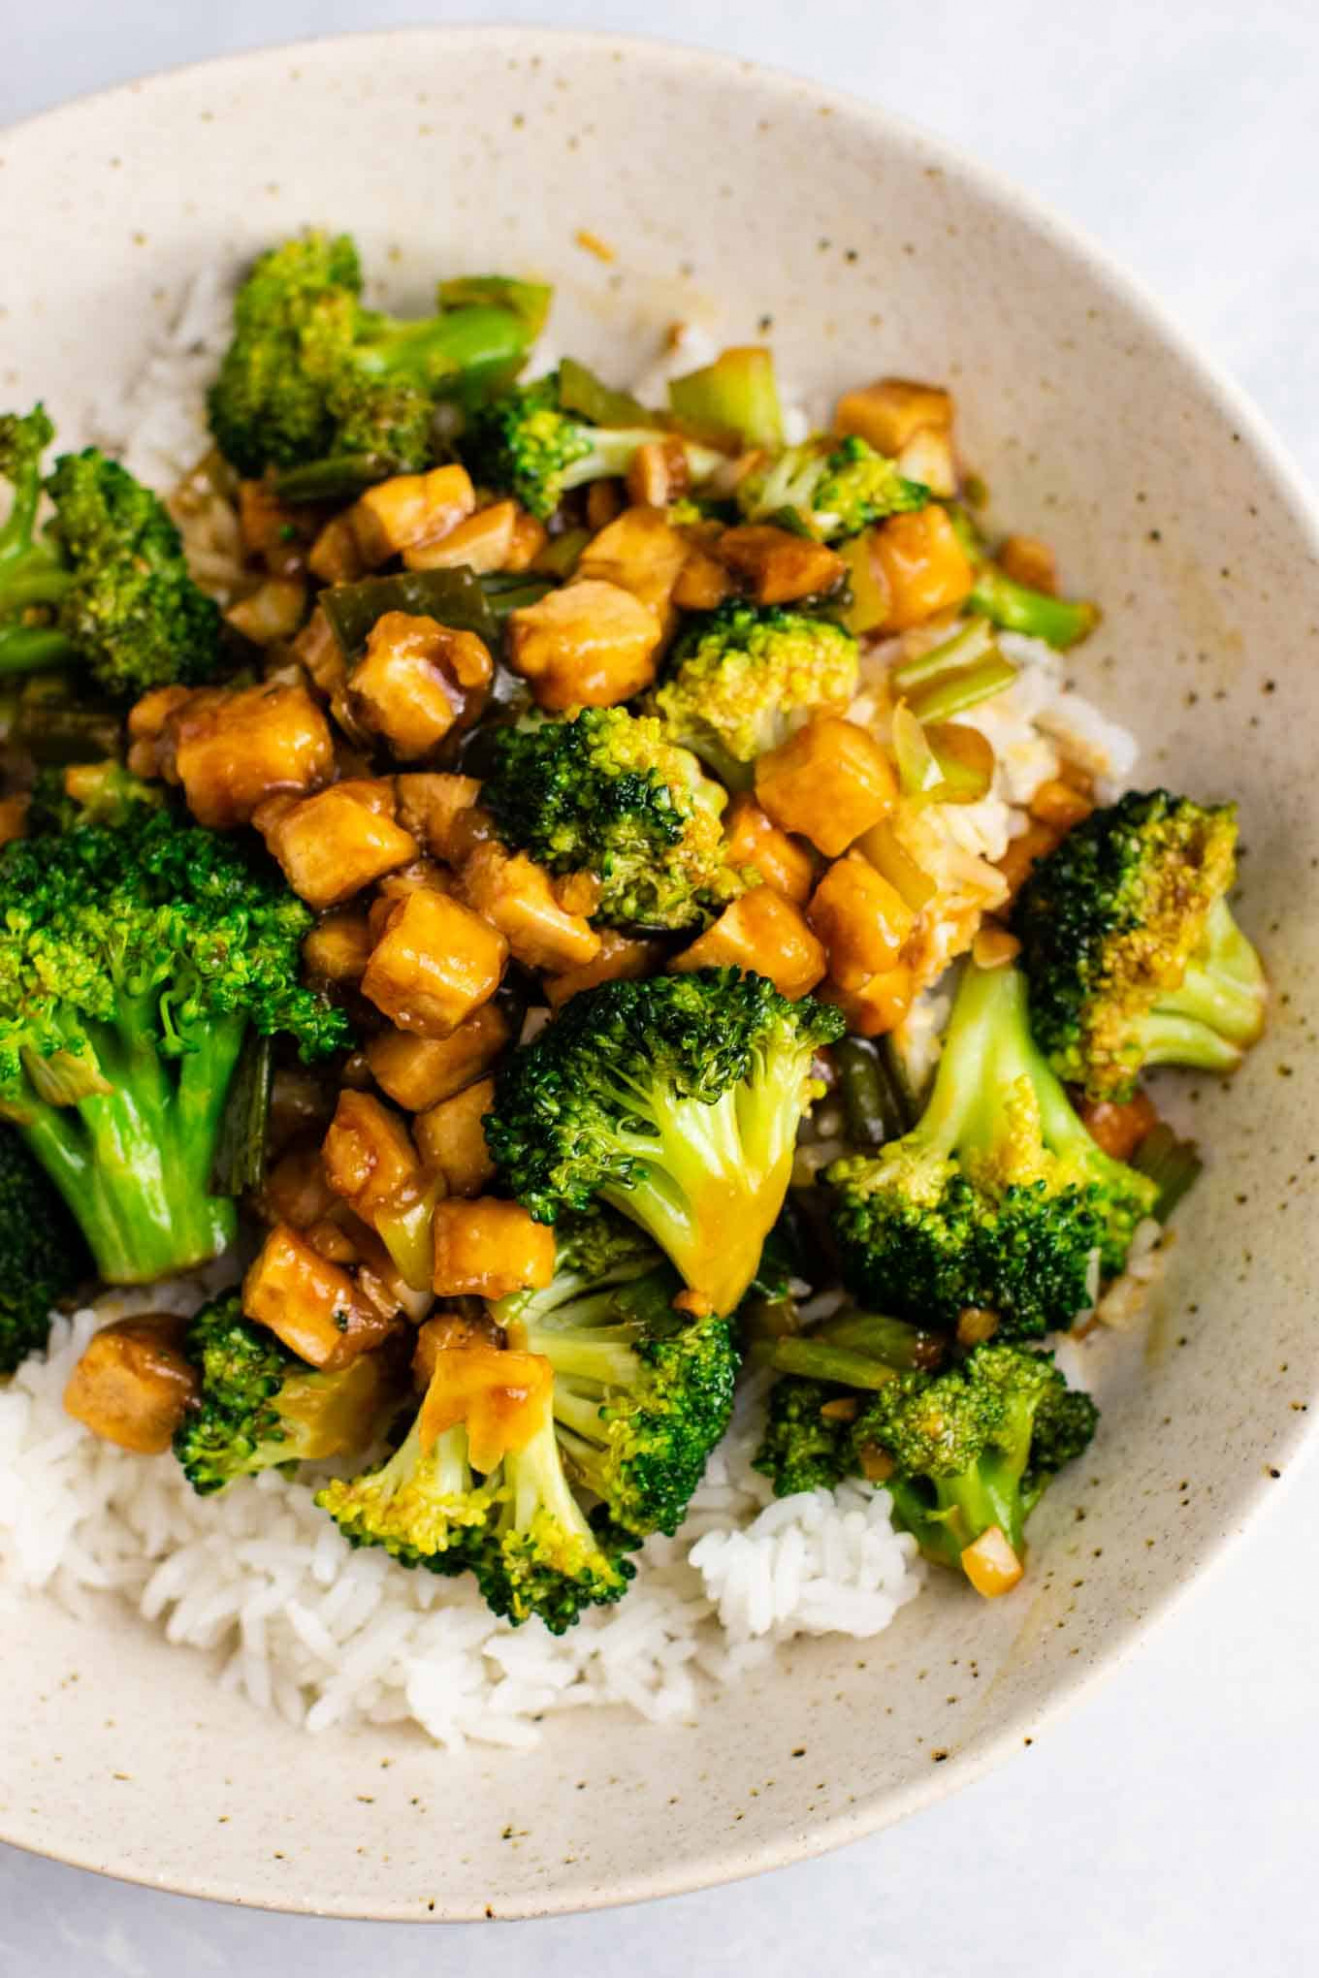 The Best Broccoli Tofu Stir Fry Recipe - Build Your Bite